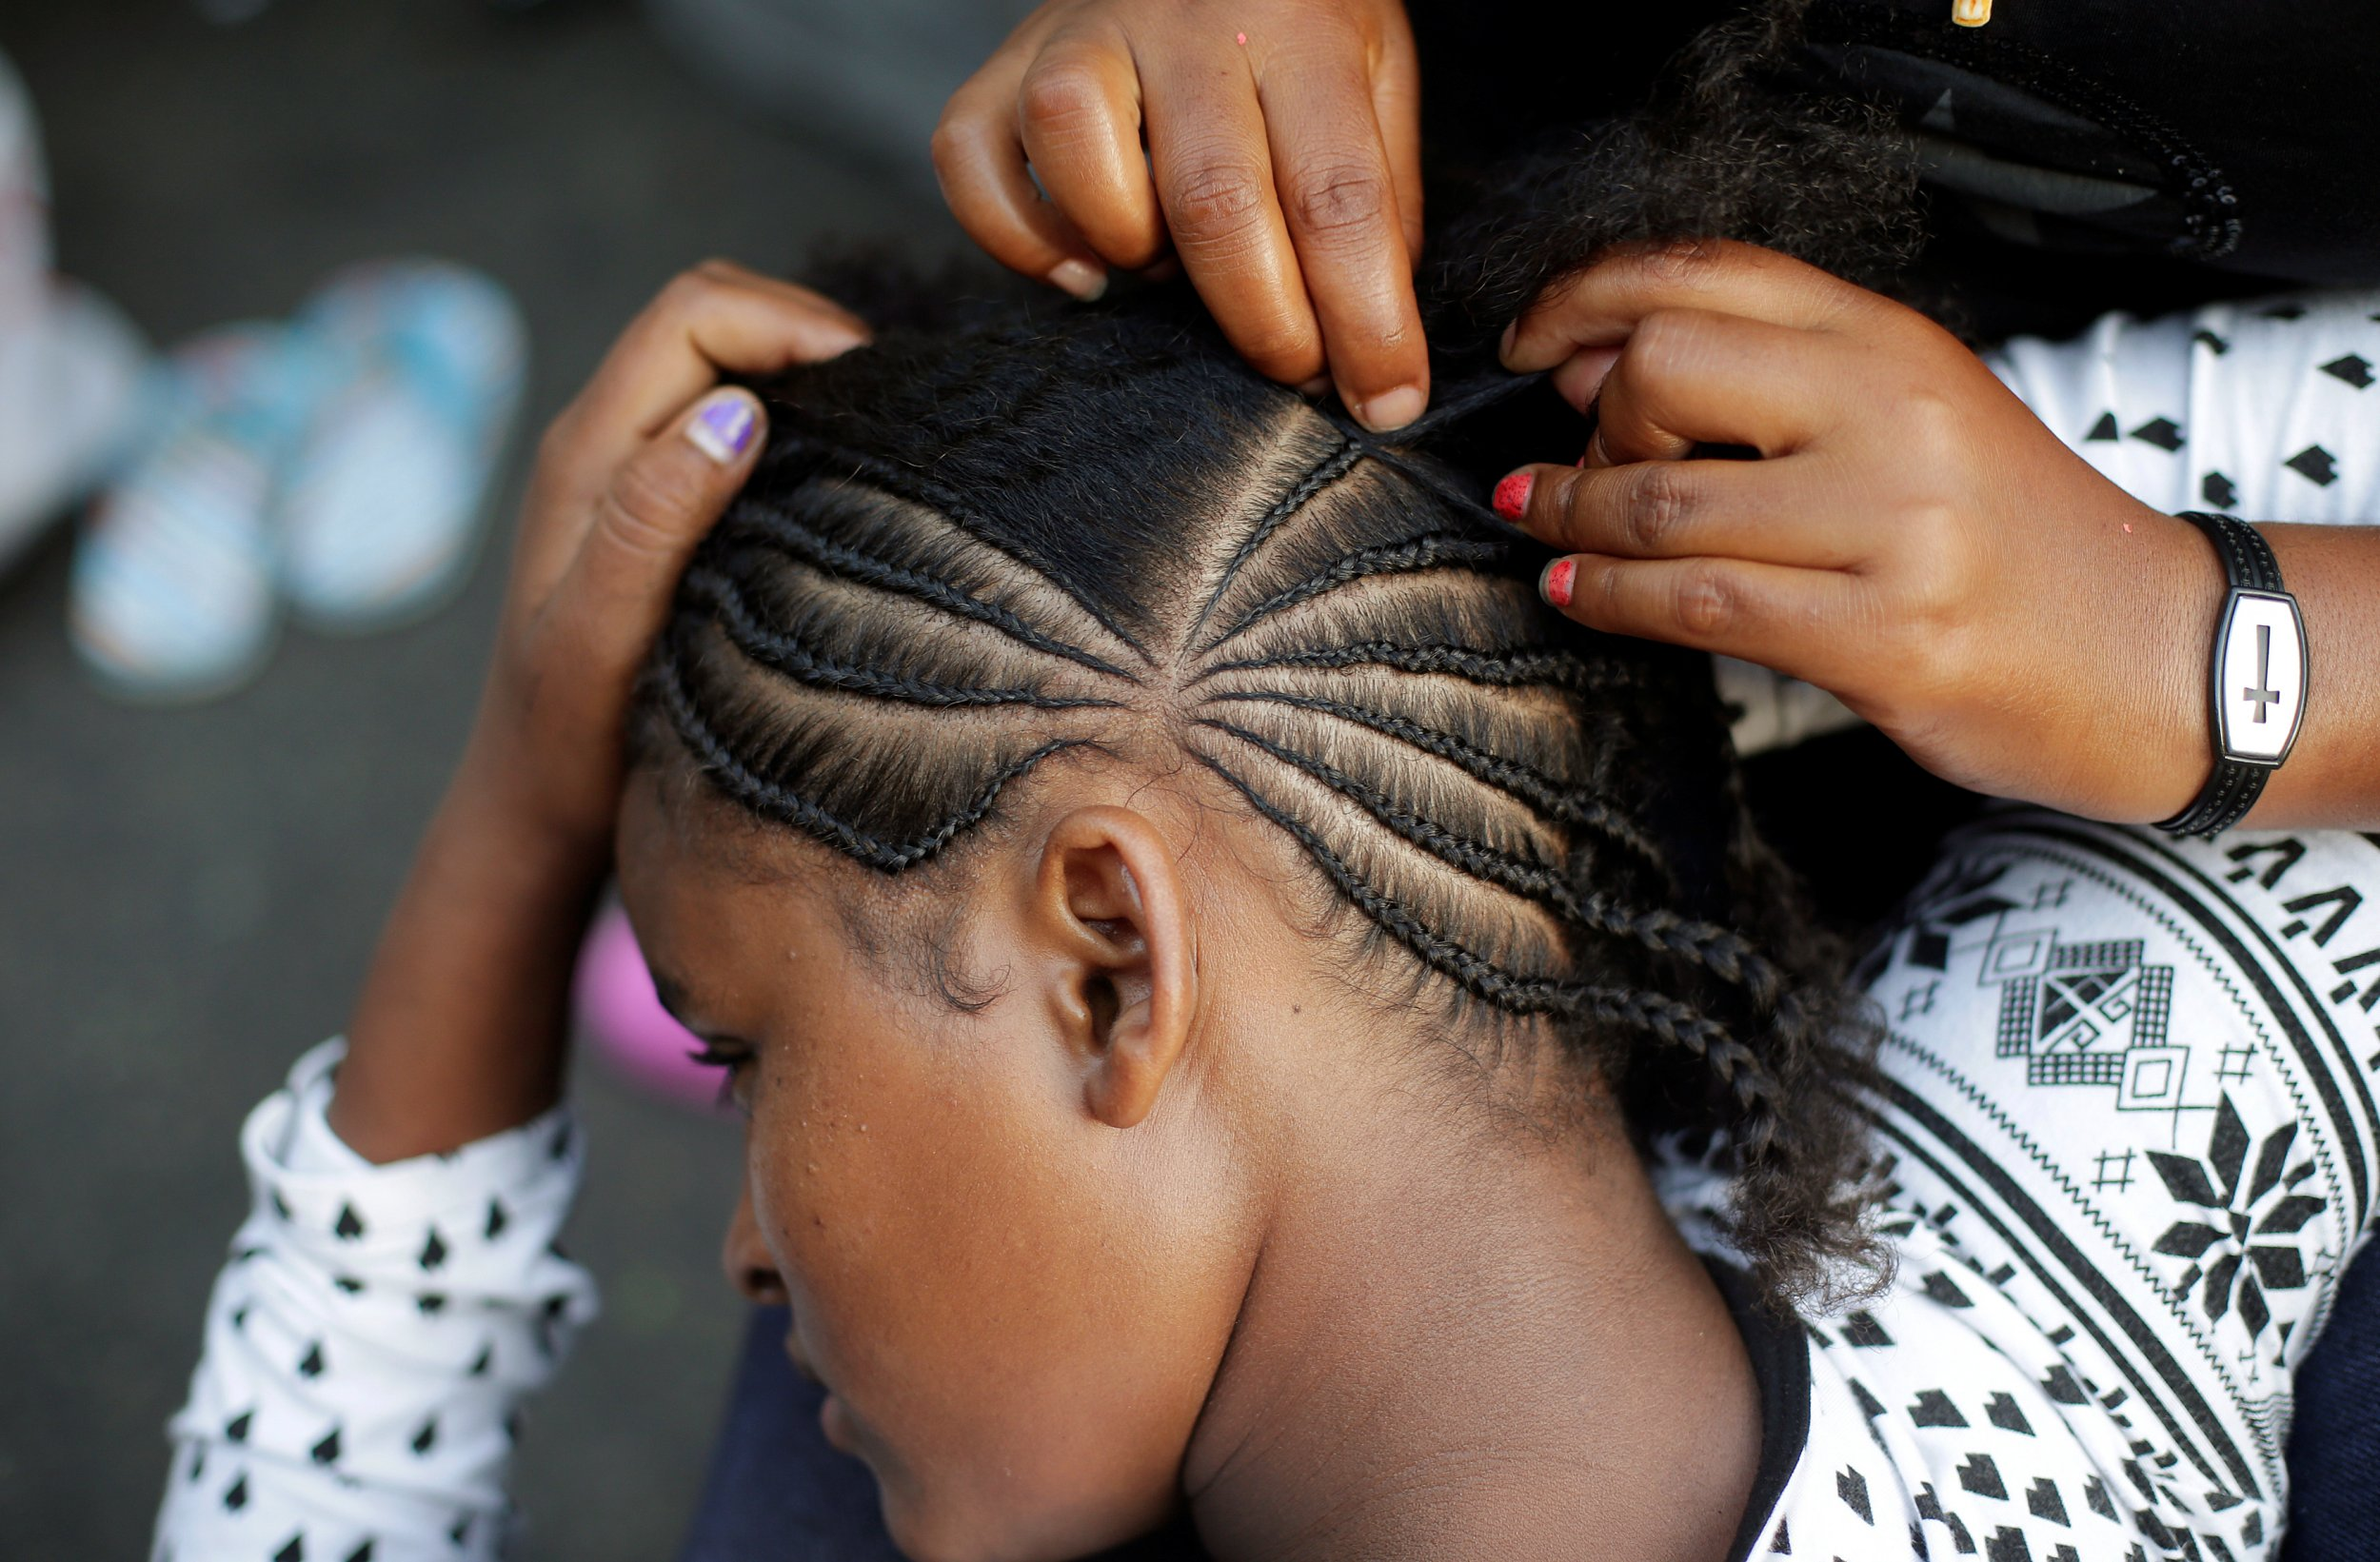 War On Black Hair Rules Banning Girls With Braids Are Biased